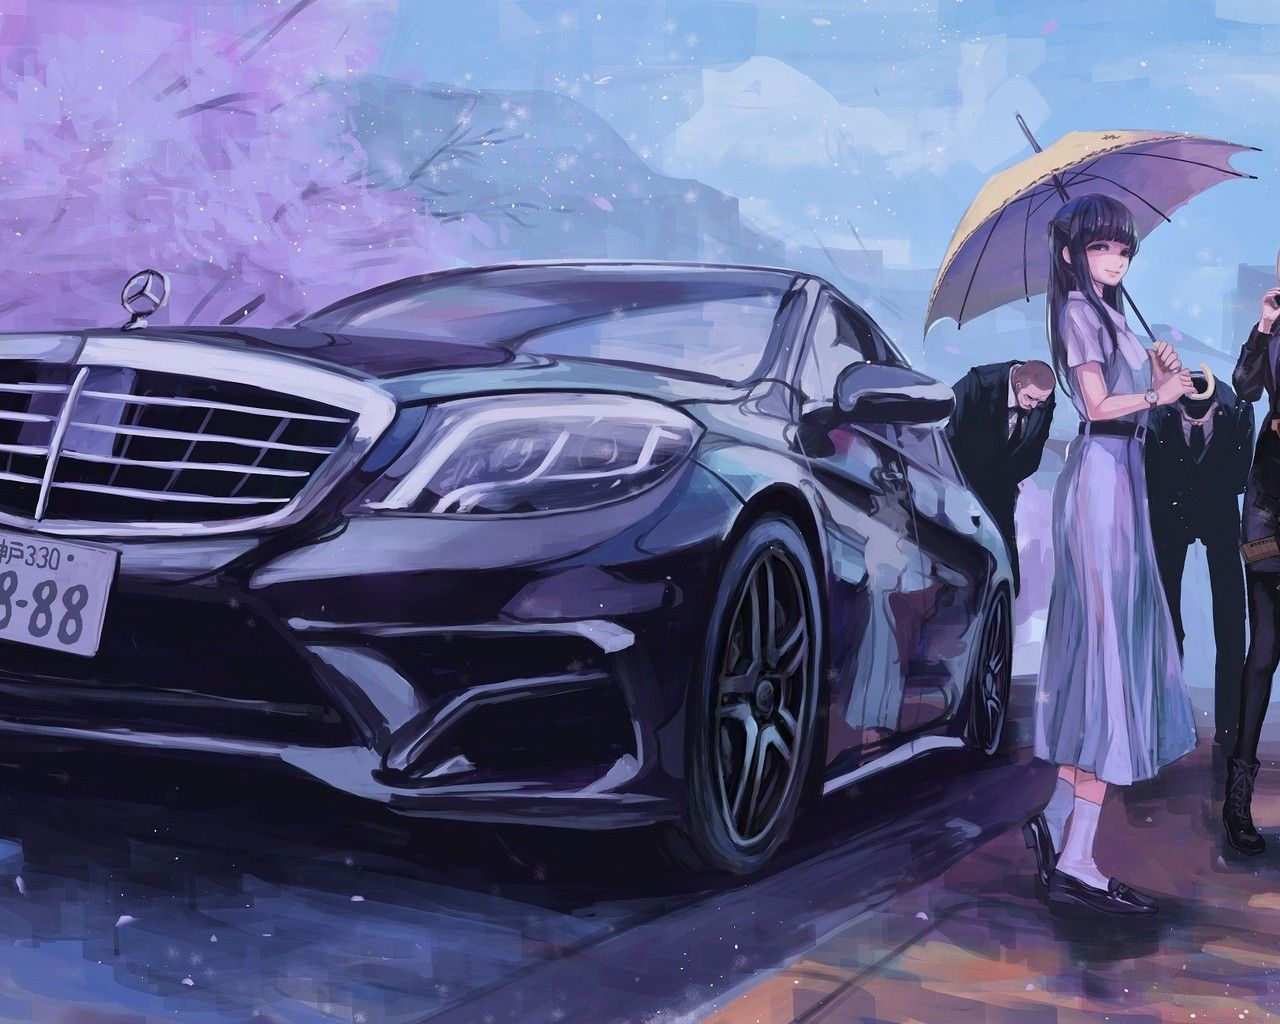 Car Anime Wallpapers   Top Car Anime Backgrounds 1280x1024